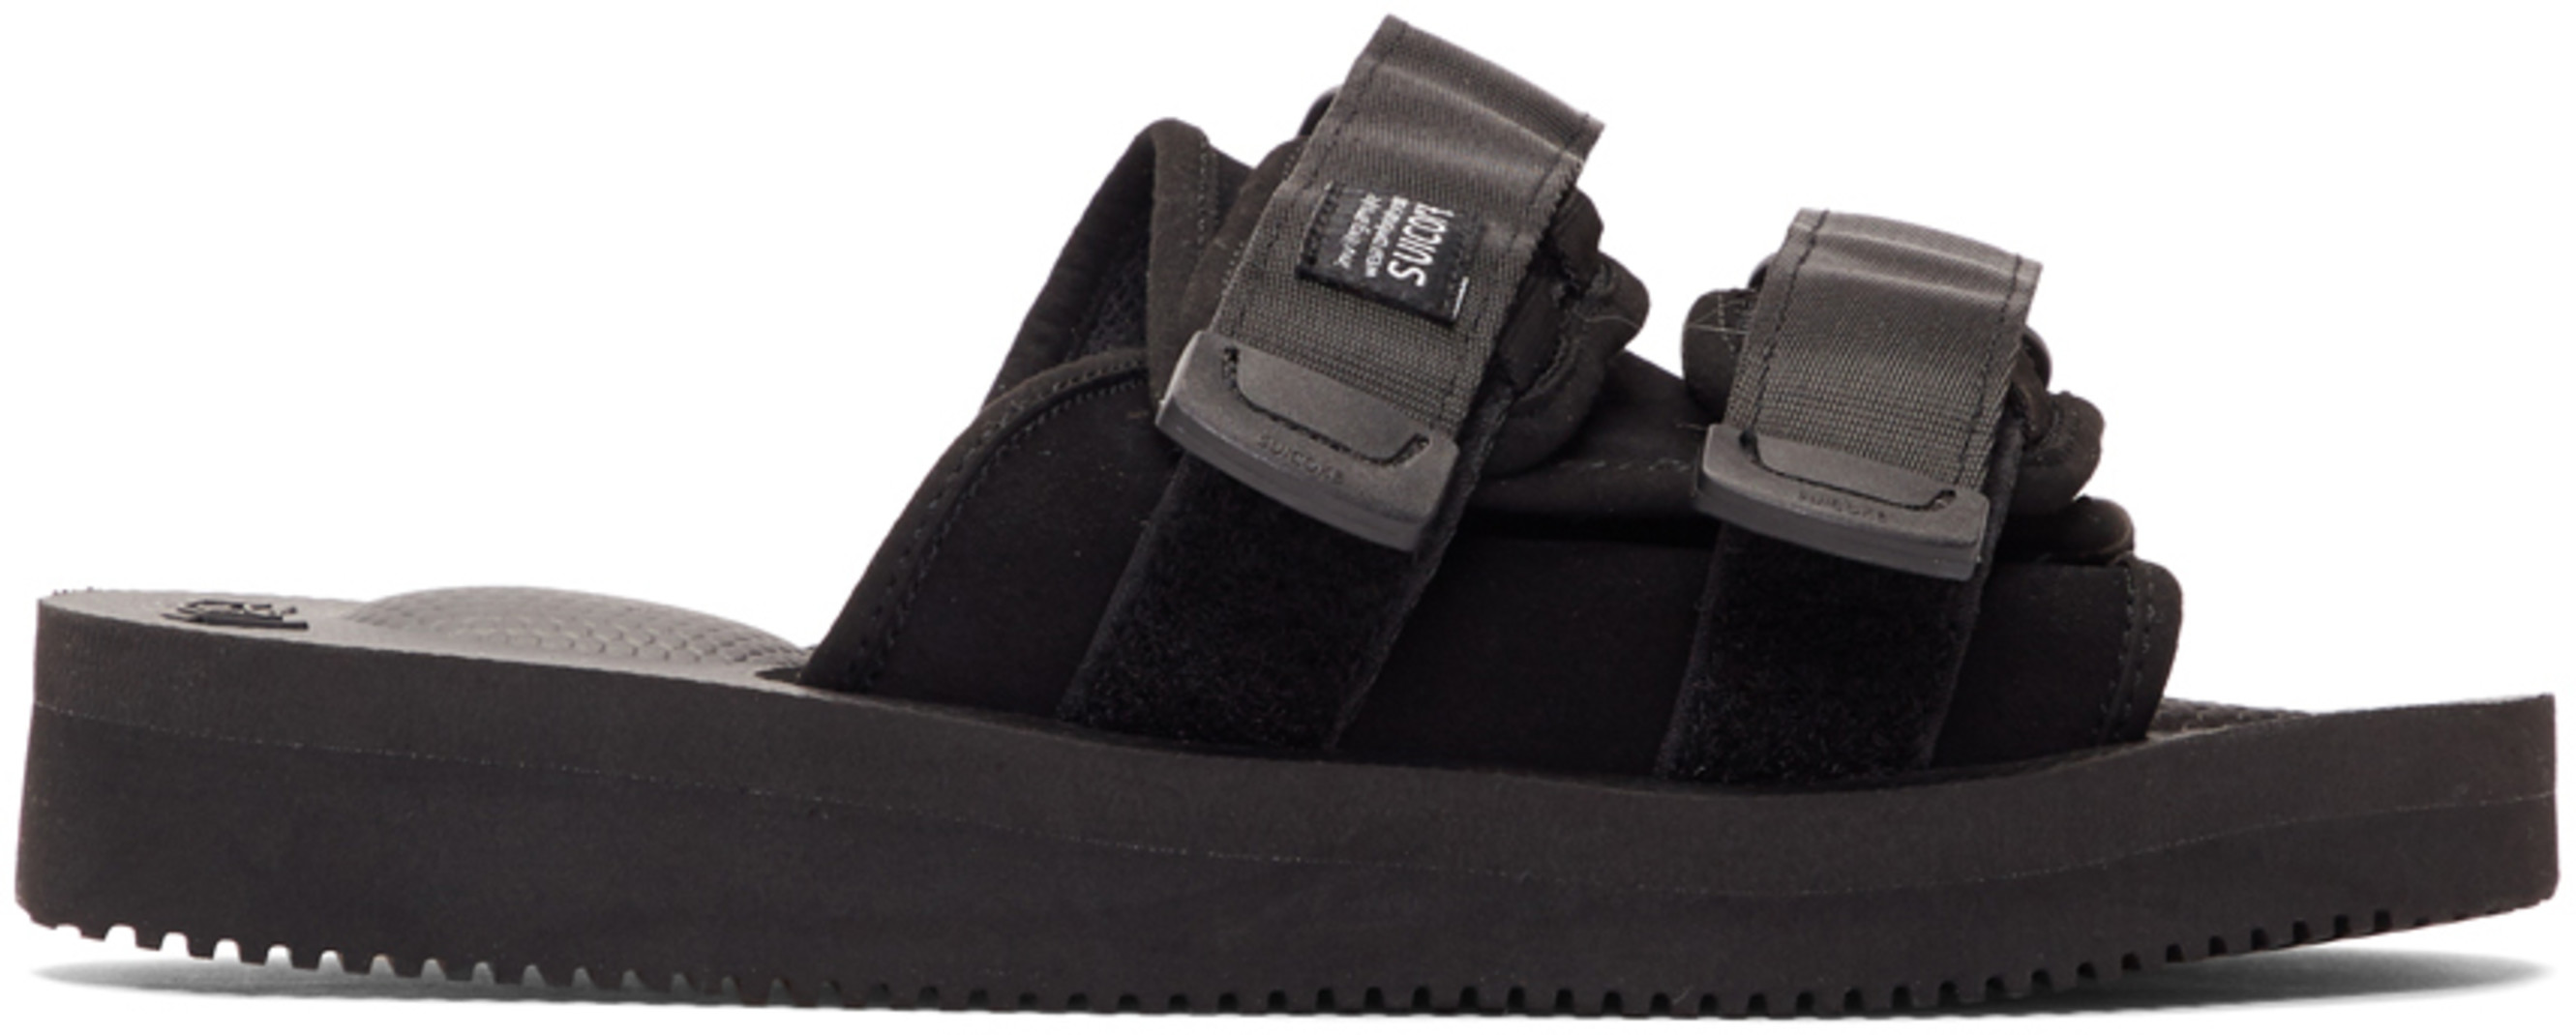 def2f39e115a Suicoke for Men SS19 Collection